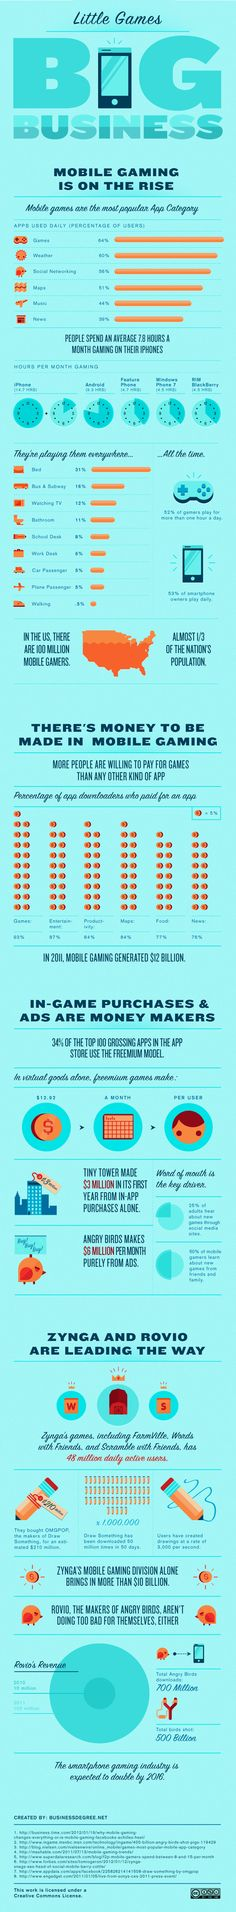 INFOGRAPHIC: Little Games – Big Business, mobile gaming is on the rise!  Our friends from Business Degree created an infographic which takes a closer look at the mobile gaming industry and its booming business.  Thank you Jen Rhee and you team for the valuable info.